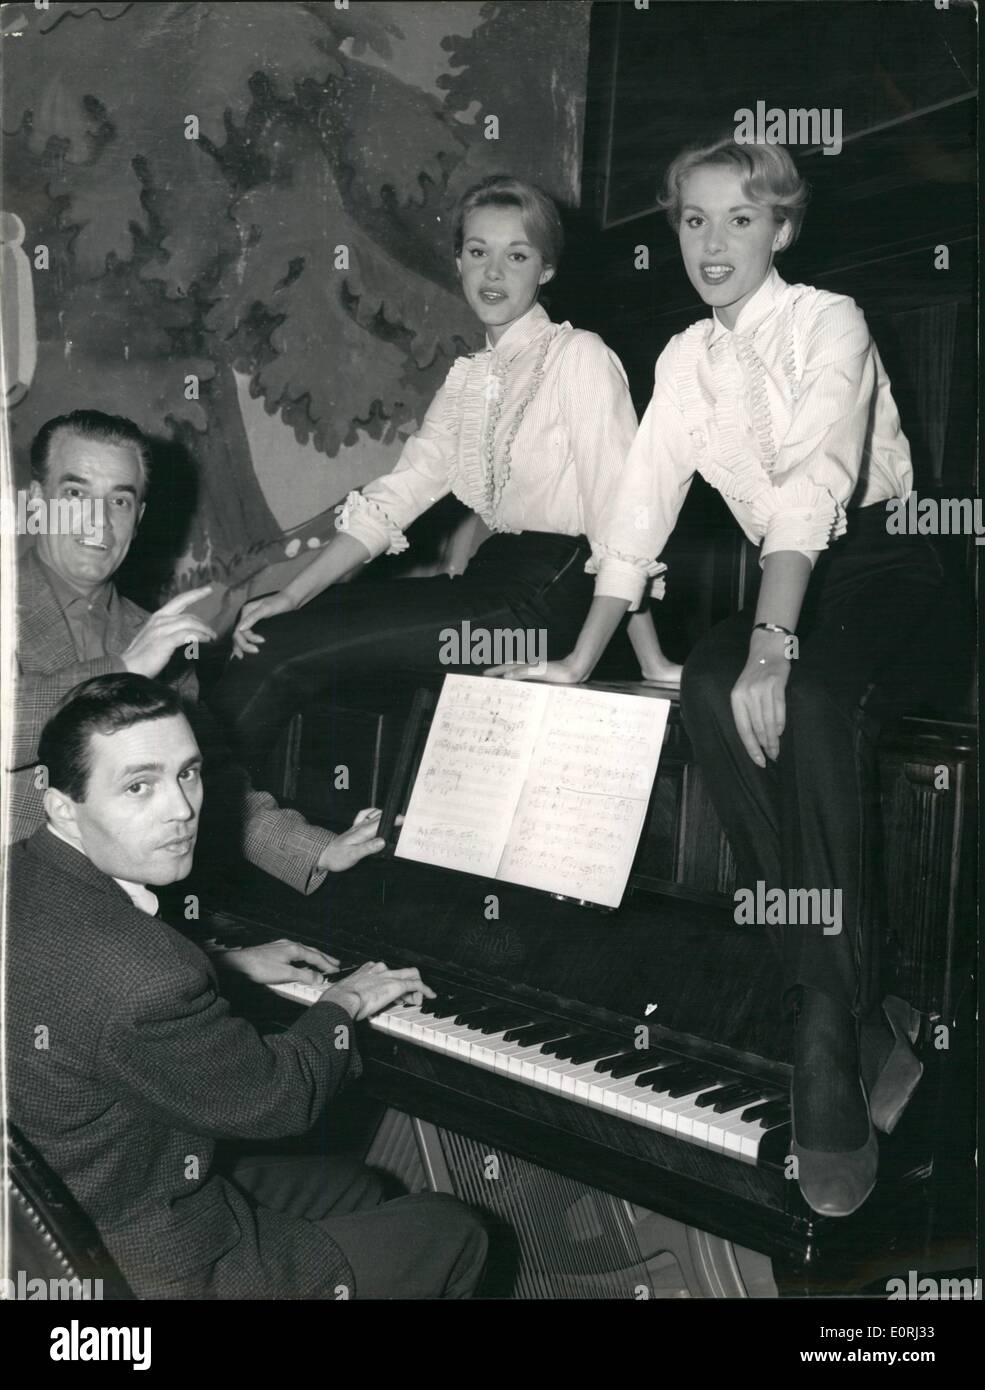 Nov. 11, 1959 - The Lido's Kessler twins, who are also part of the Blue Bell Girls, are going to start singing duets and will perform several songs that Betti and Landreau composed for them. The first song that they will release is called ''With Pleasure''. Michel Bernar - Stock Image